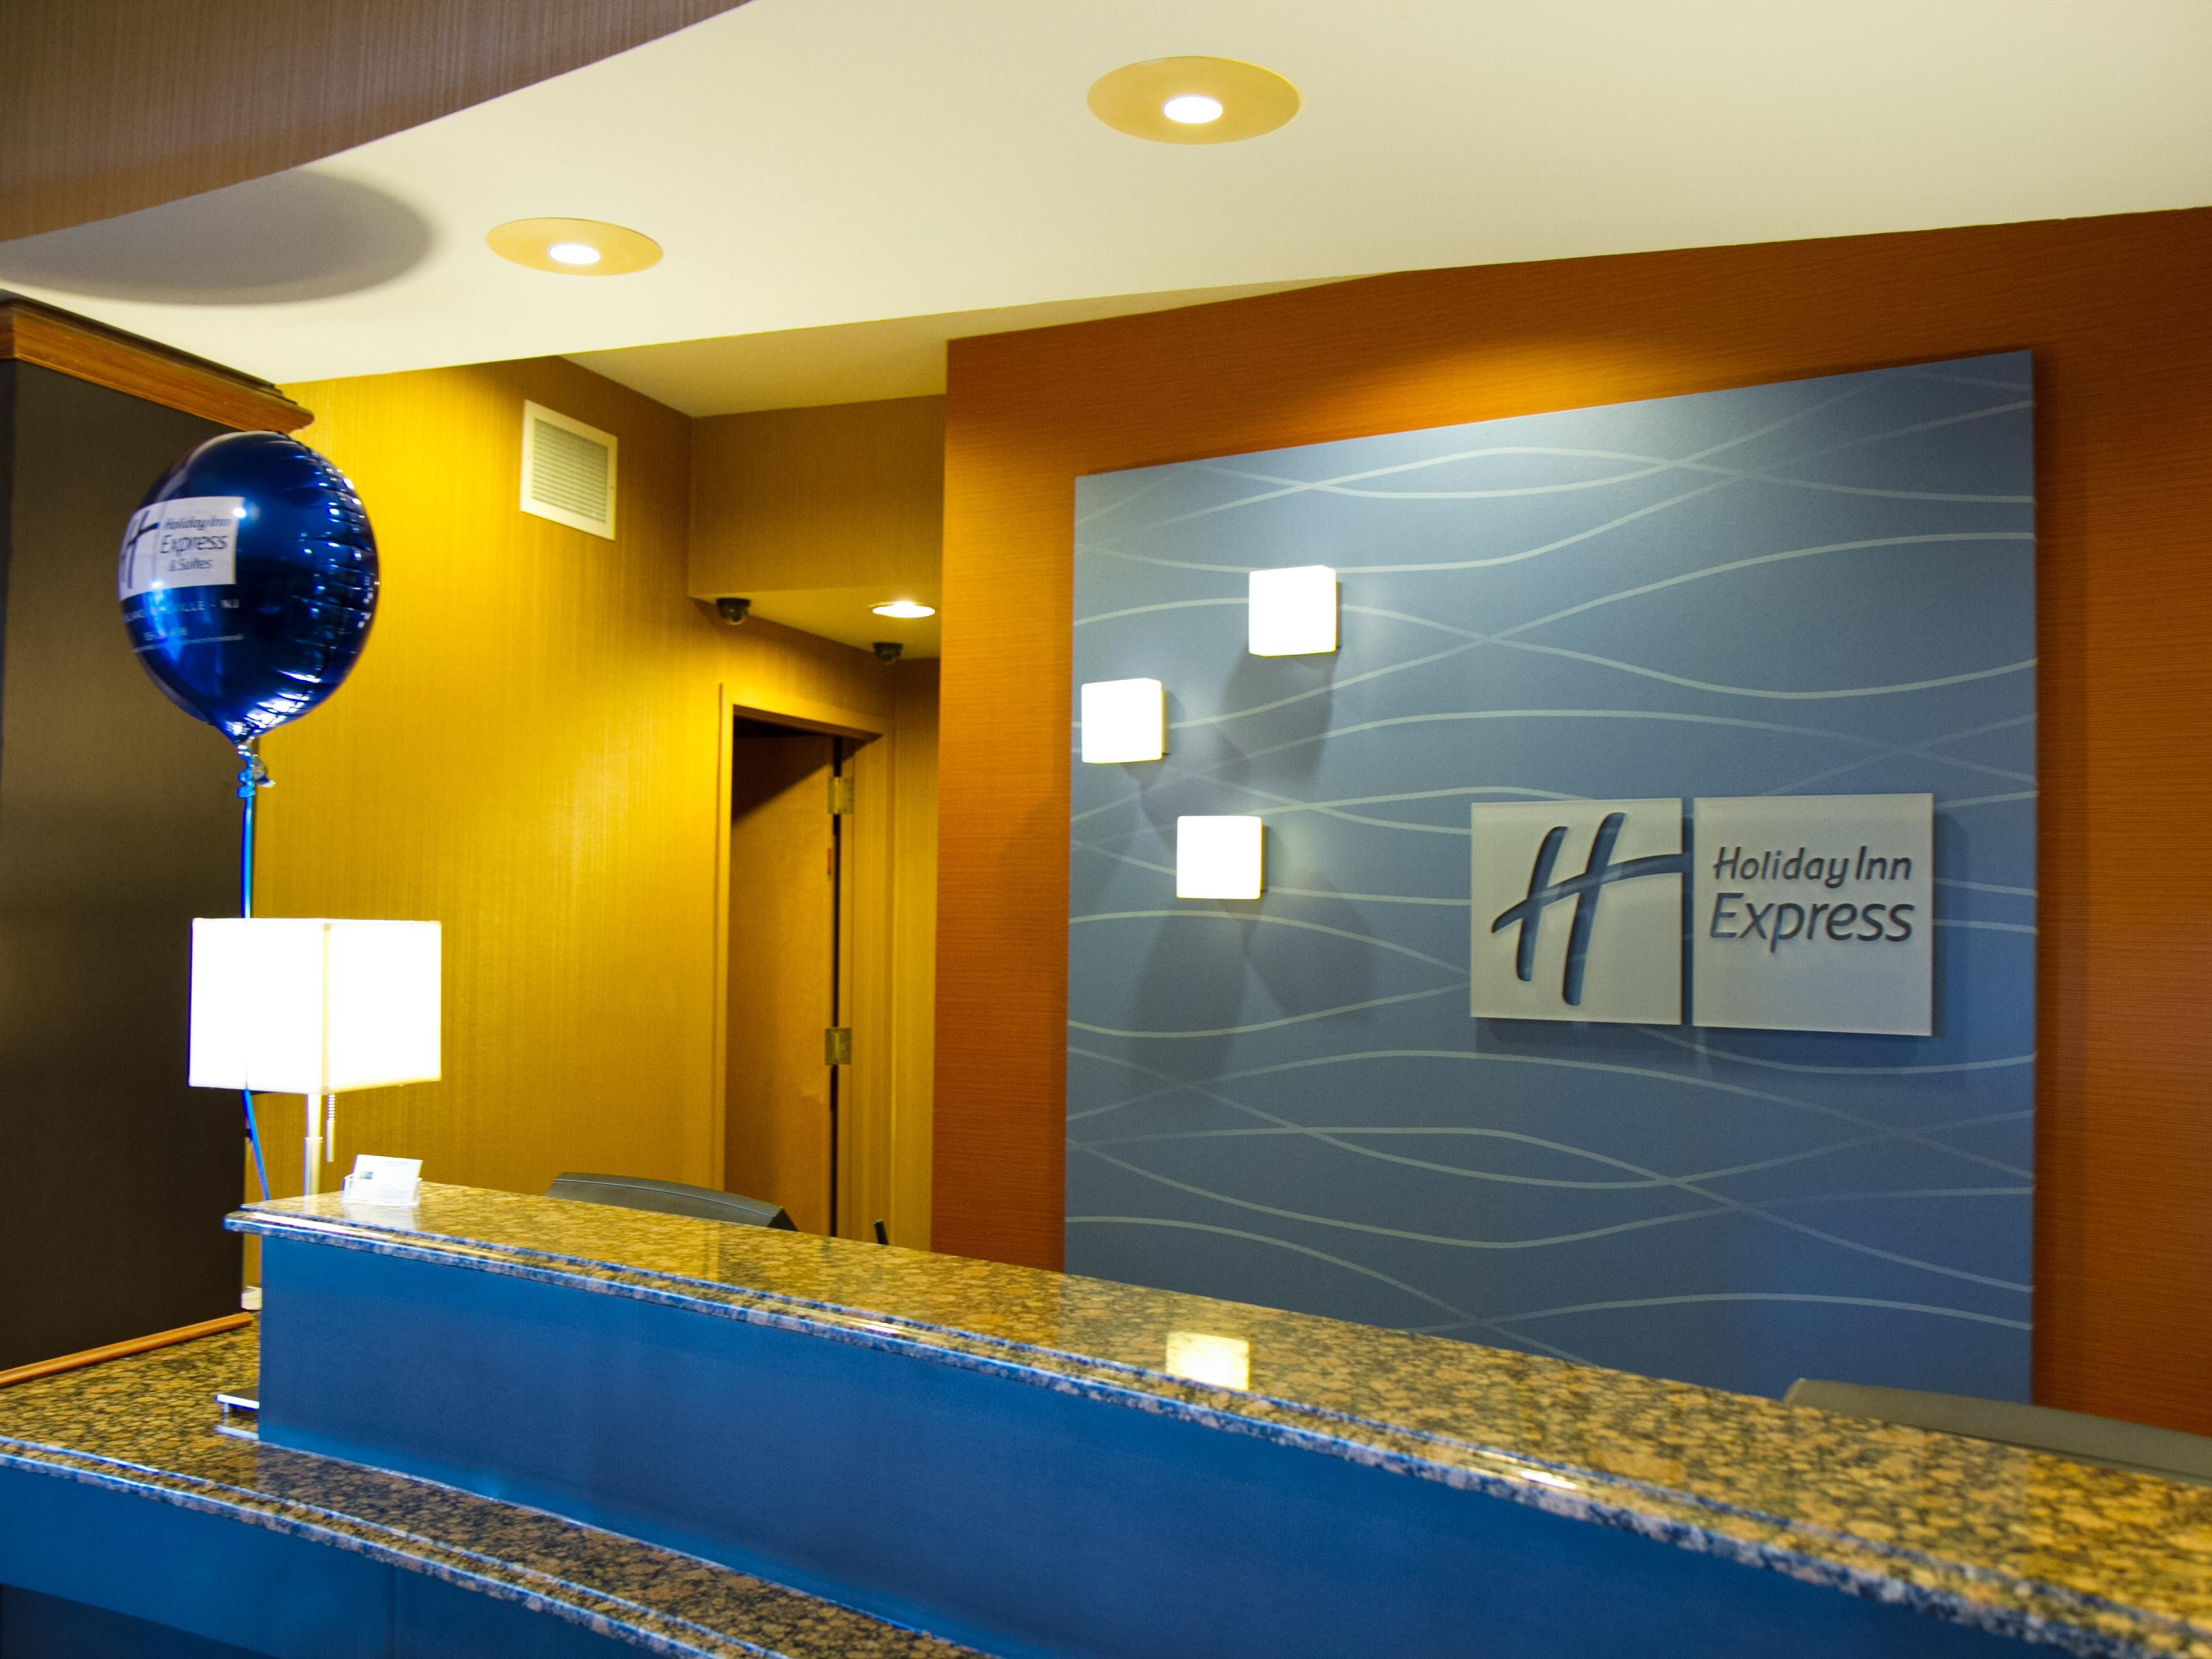 Welcome to Our Newly Renovated Holiday Inn Express